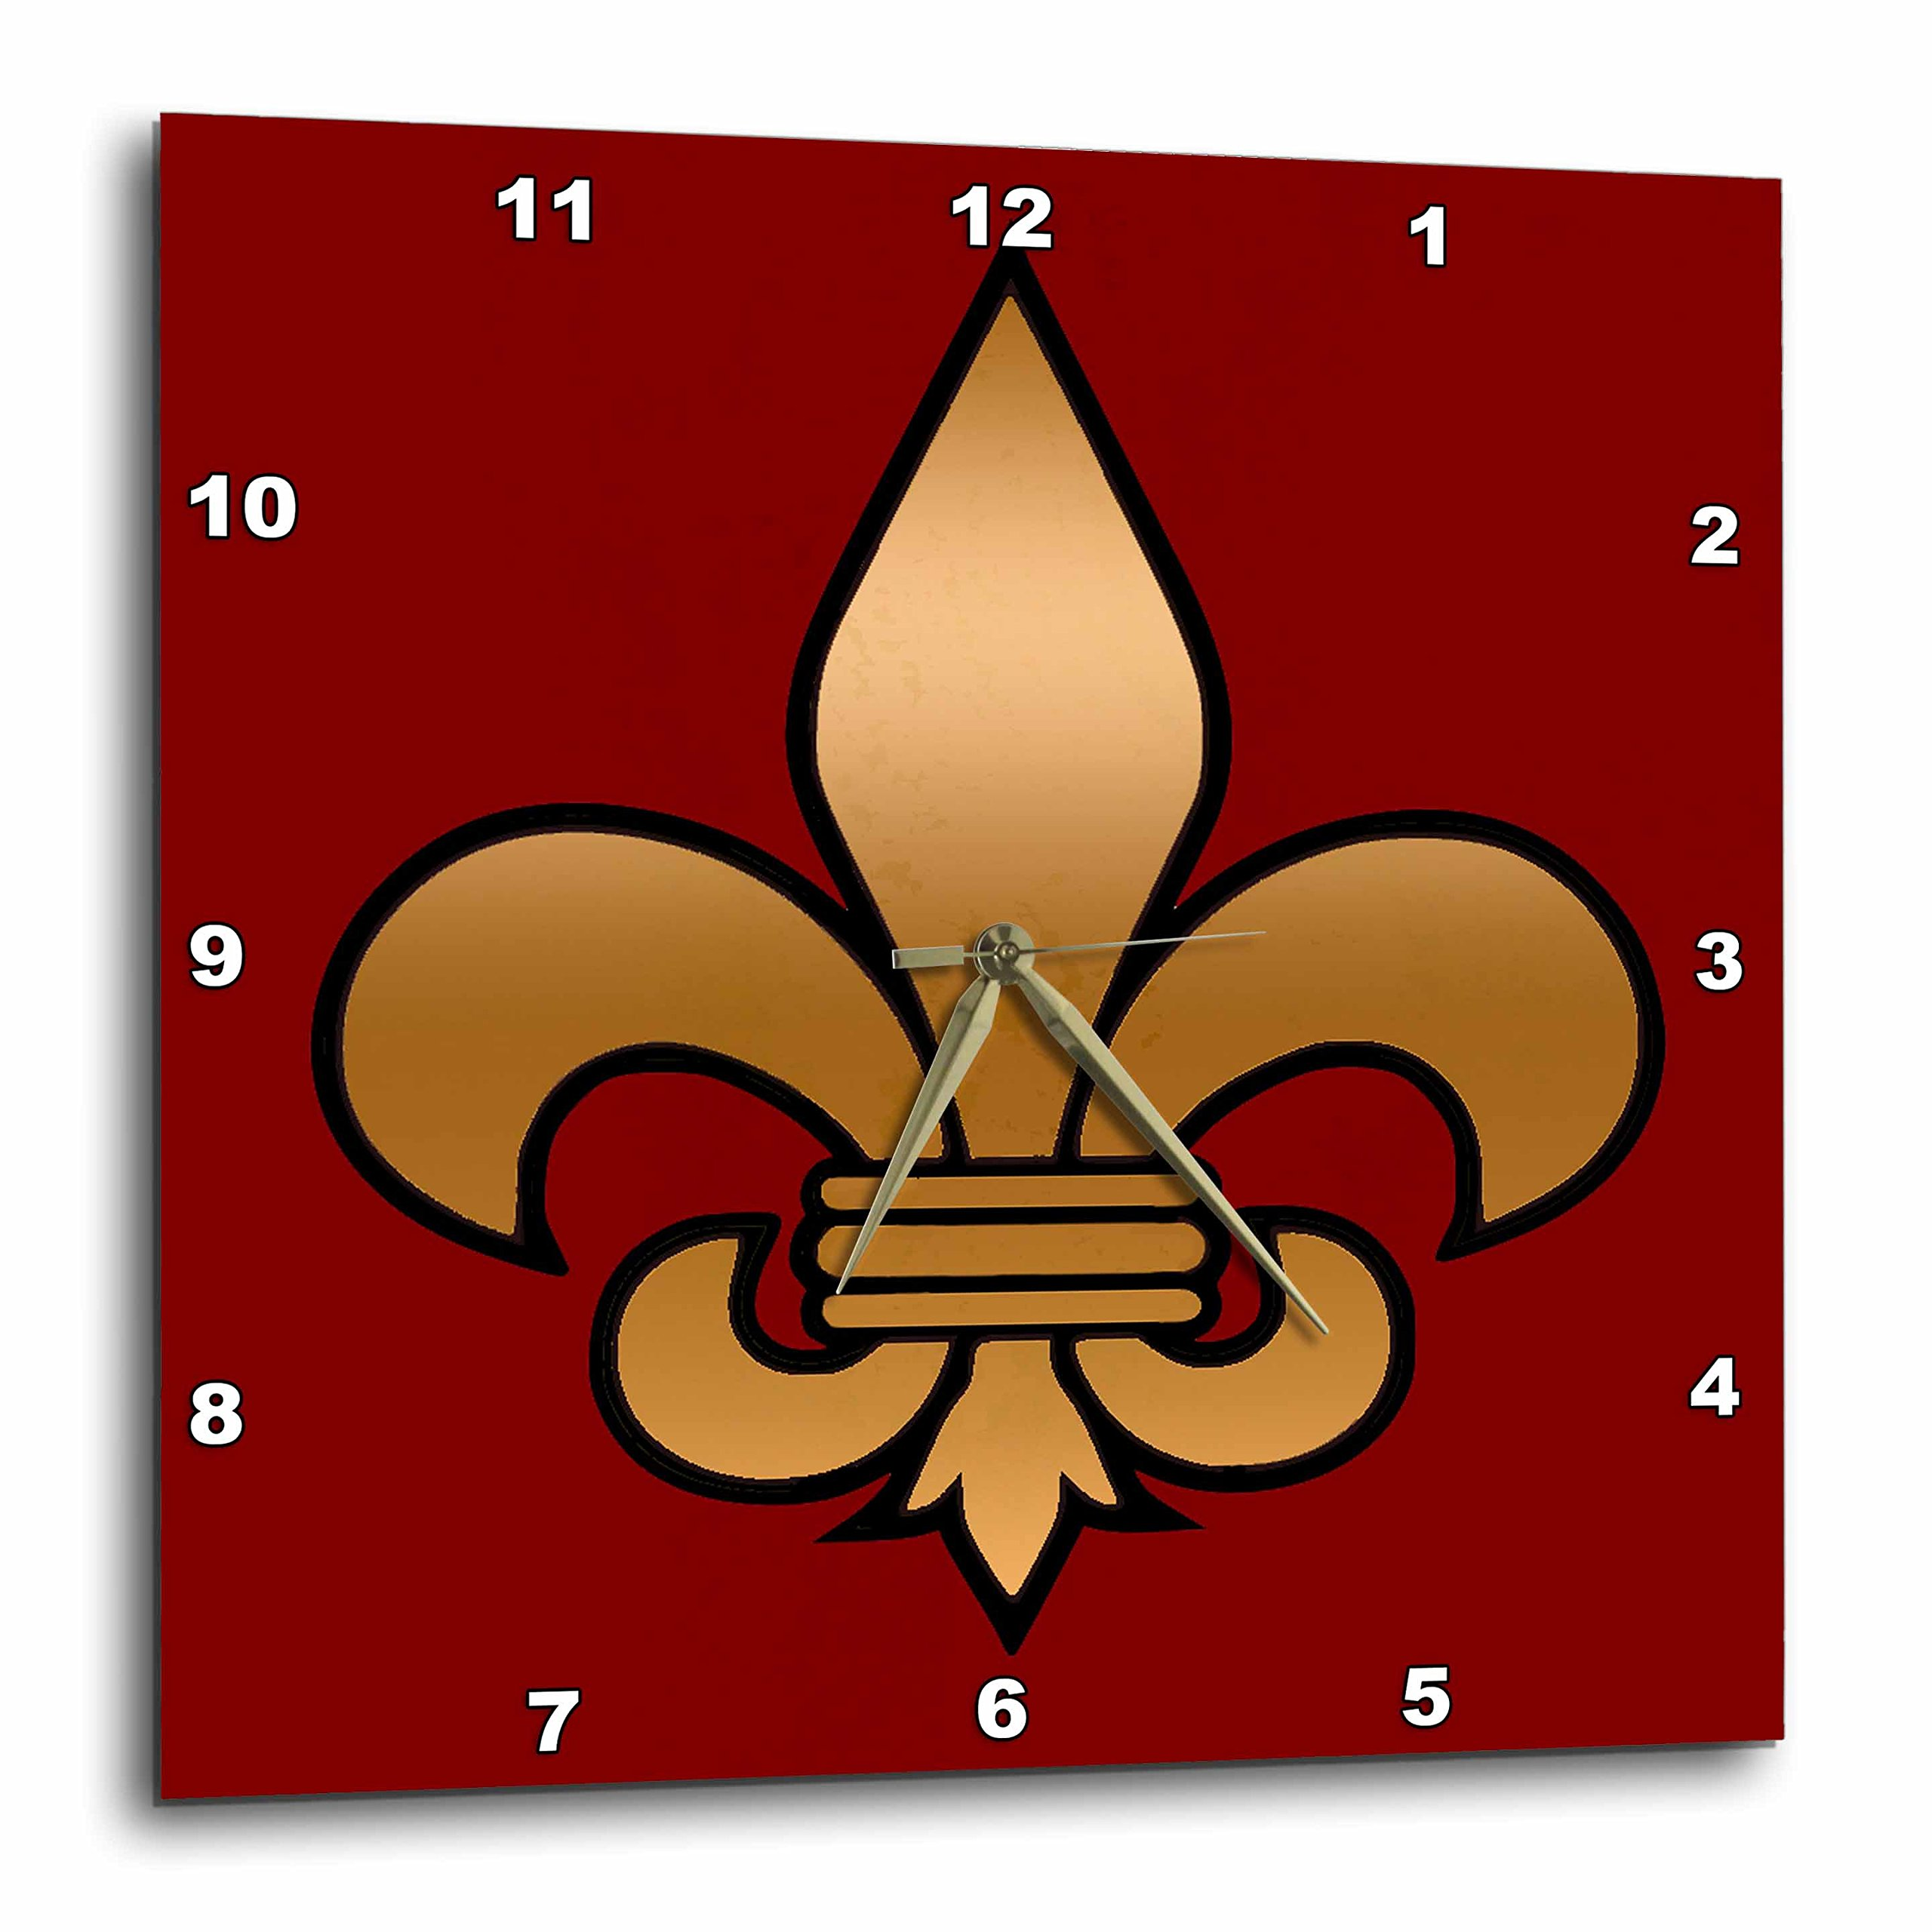 3dRose dpp_30760_3 Large Black & Gold Fleur De Lis on Maroon Background Christian Symbol Wall Clock, 15 by 15''